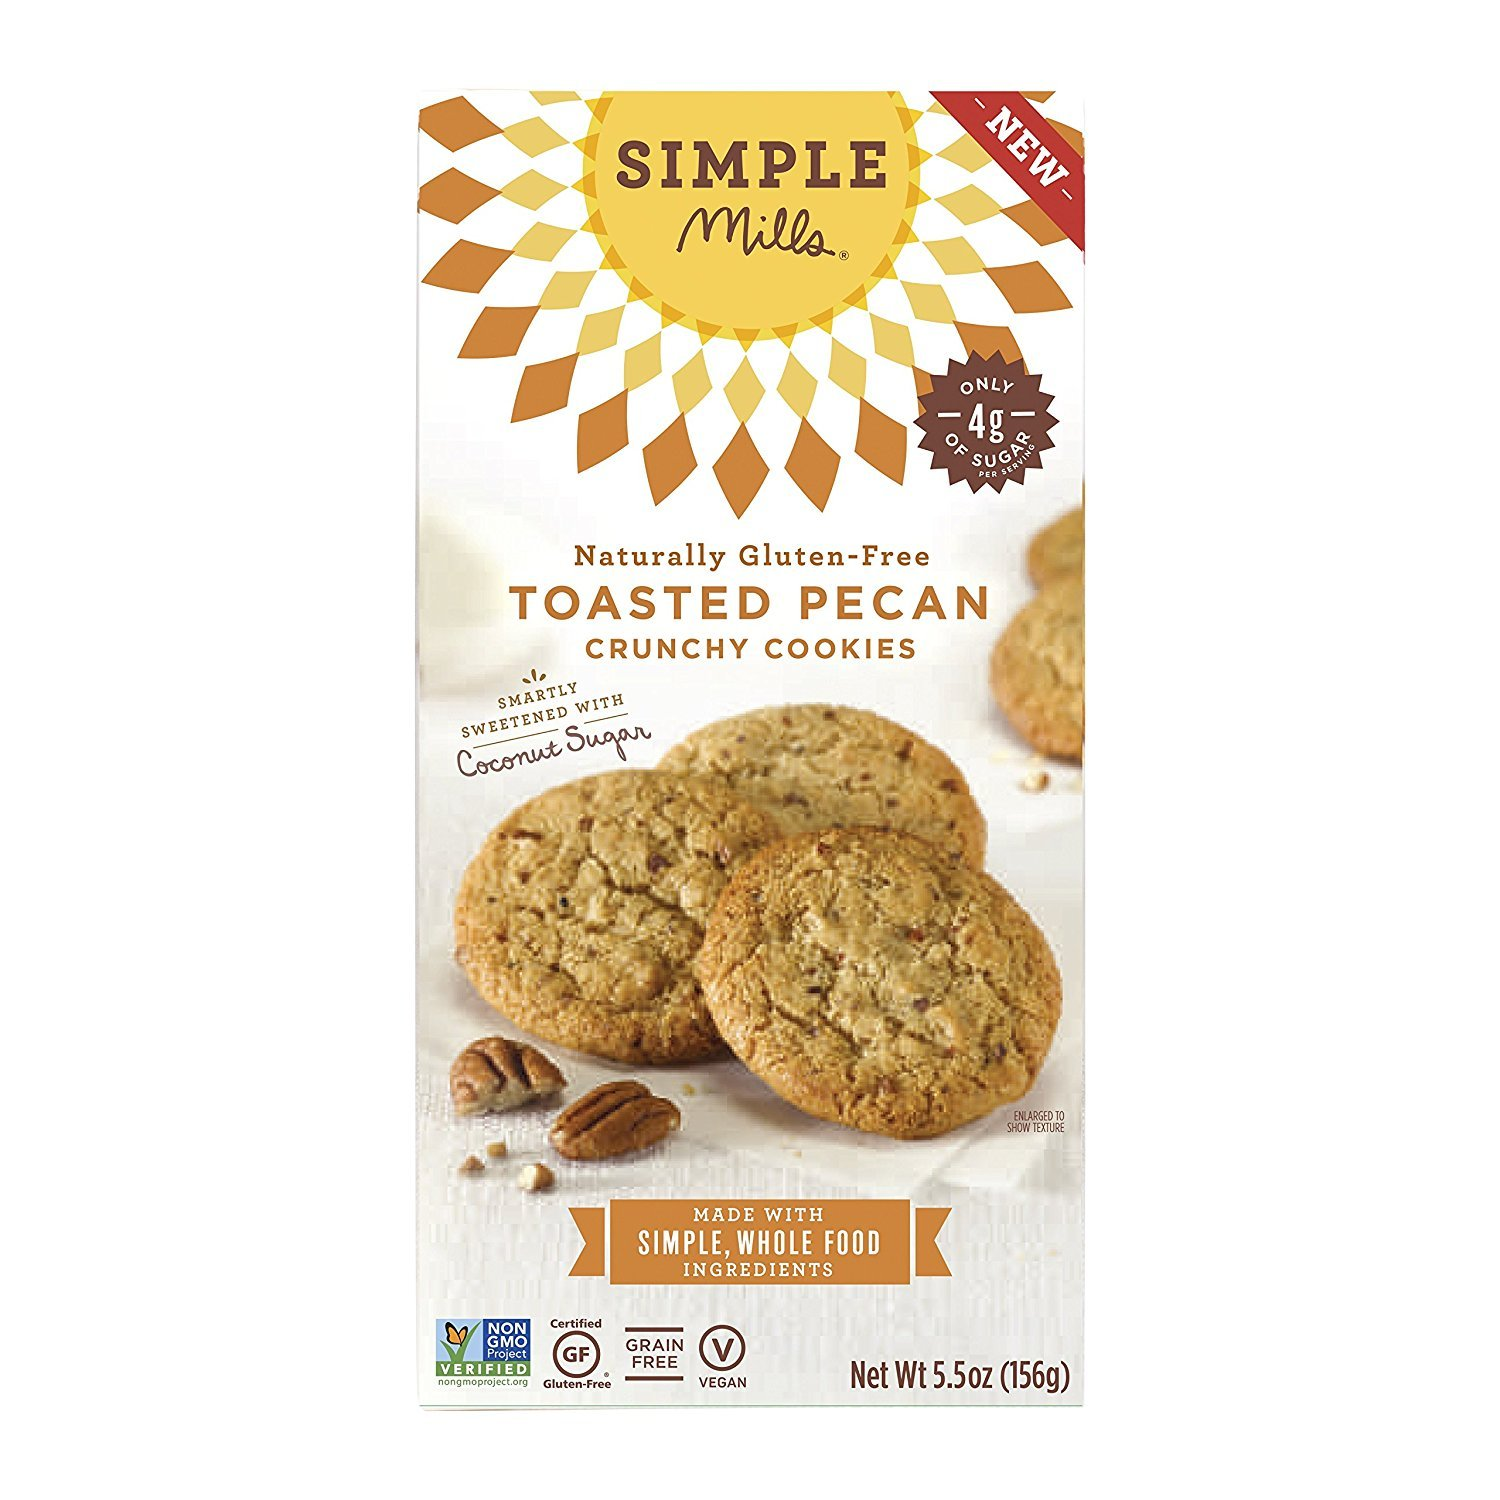 Simple Mills Naturally Gluten-Free Crunchy Cookies, Toasted Pecan, 5.5 oz (PACKAGING MAY VARY)